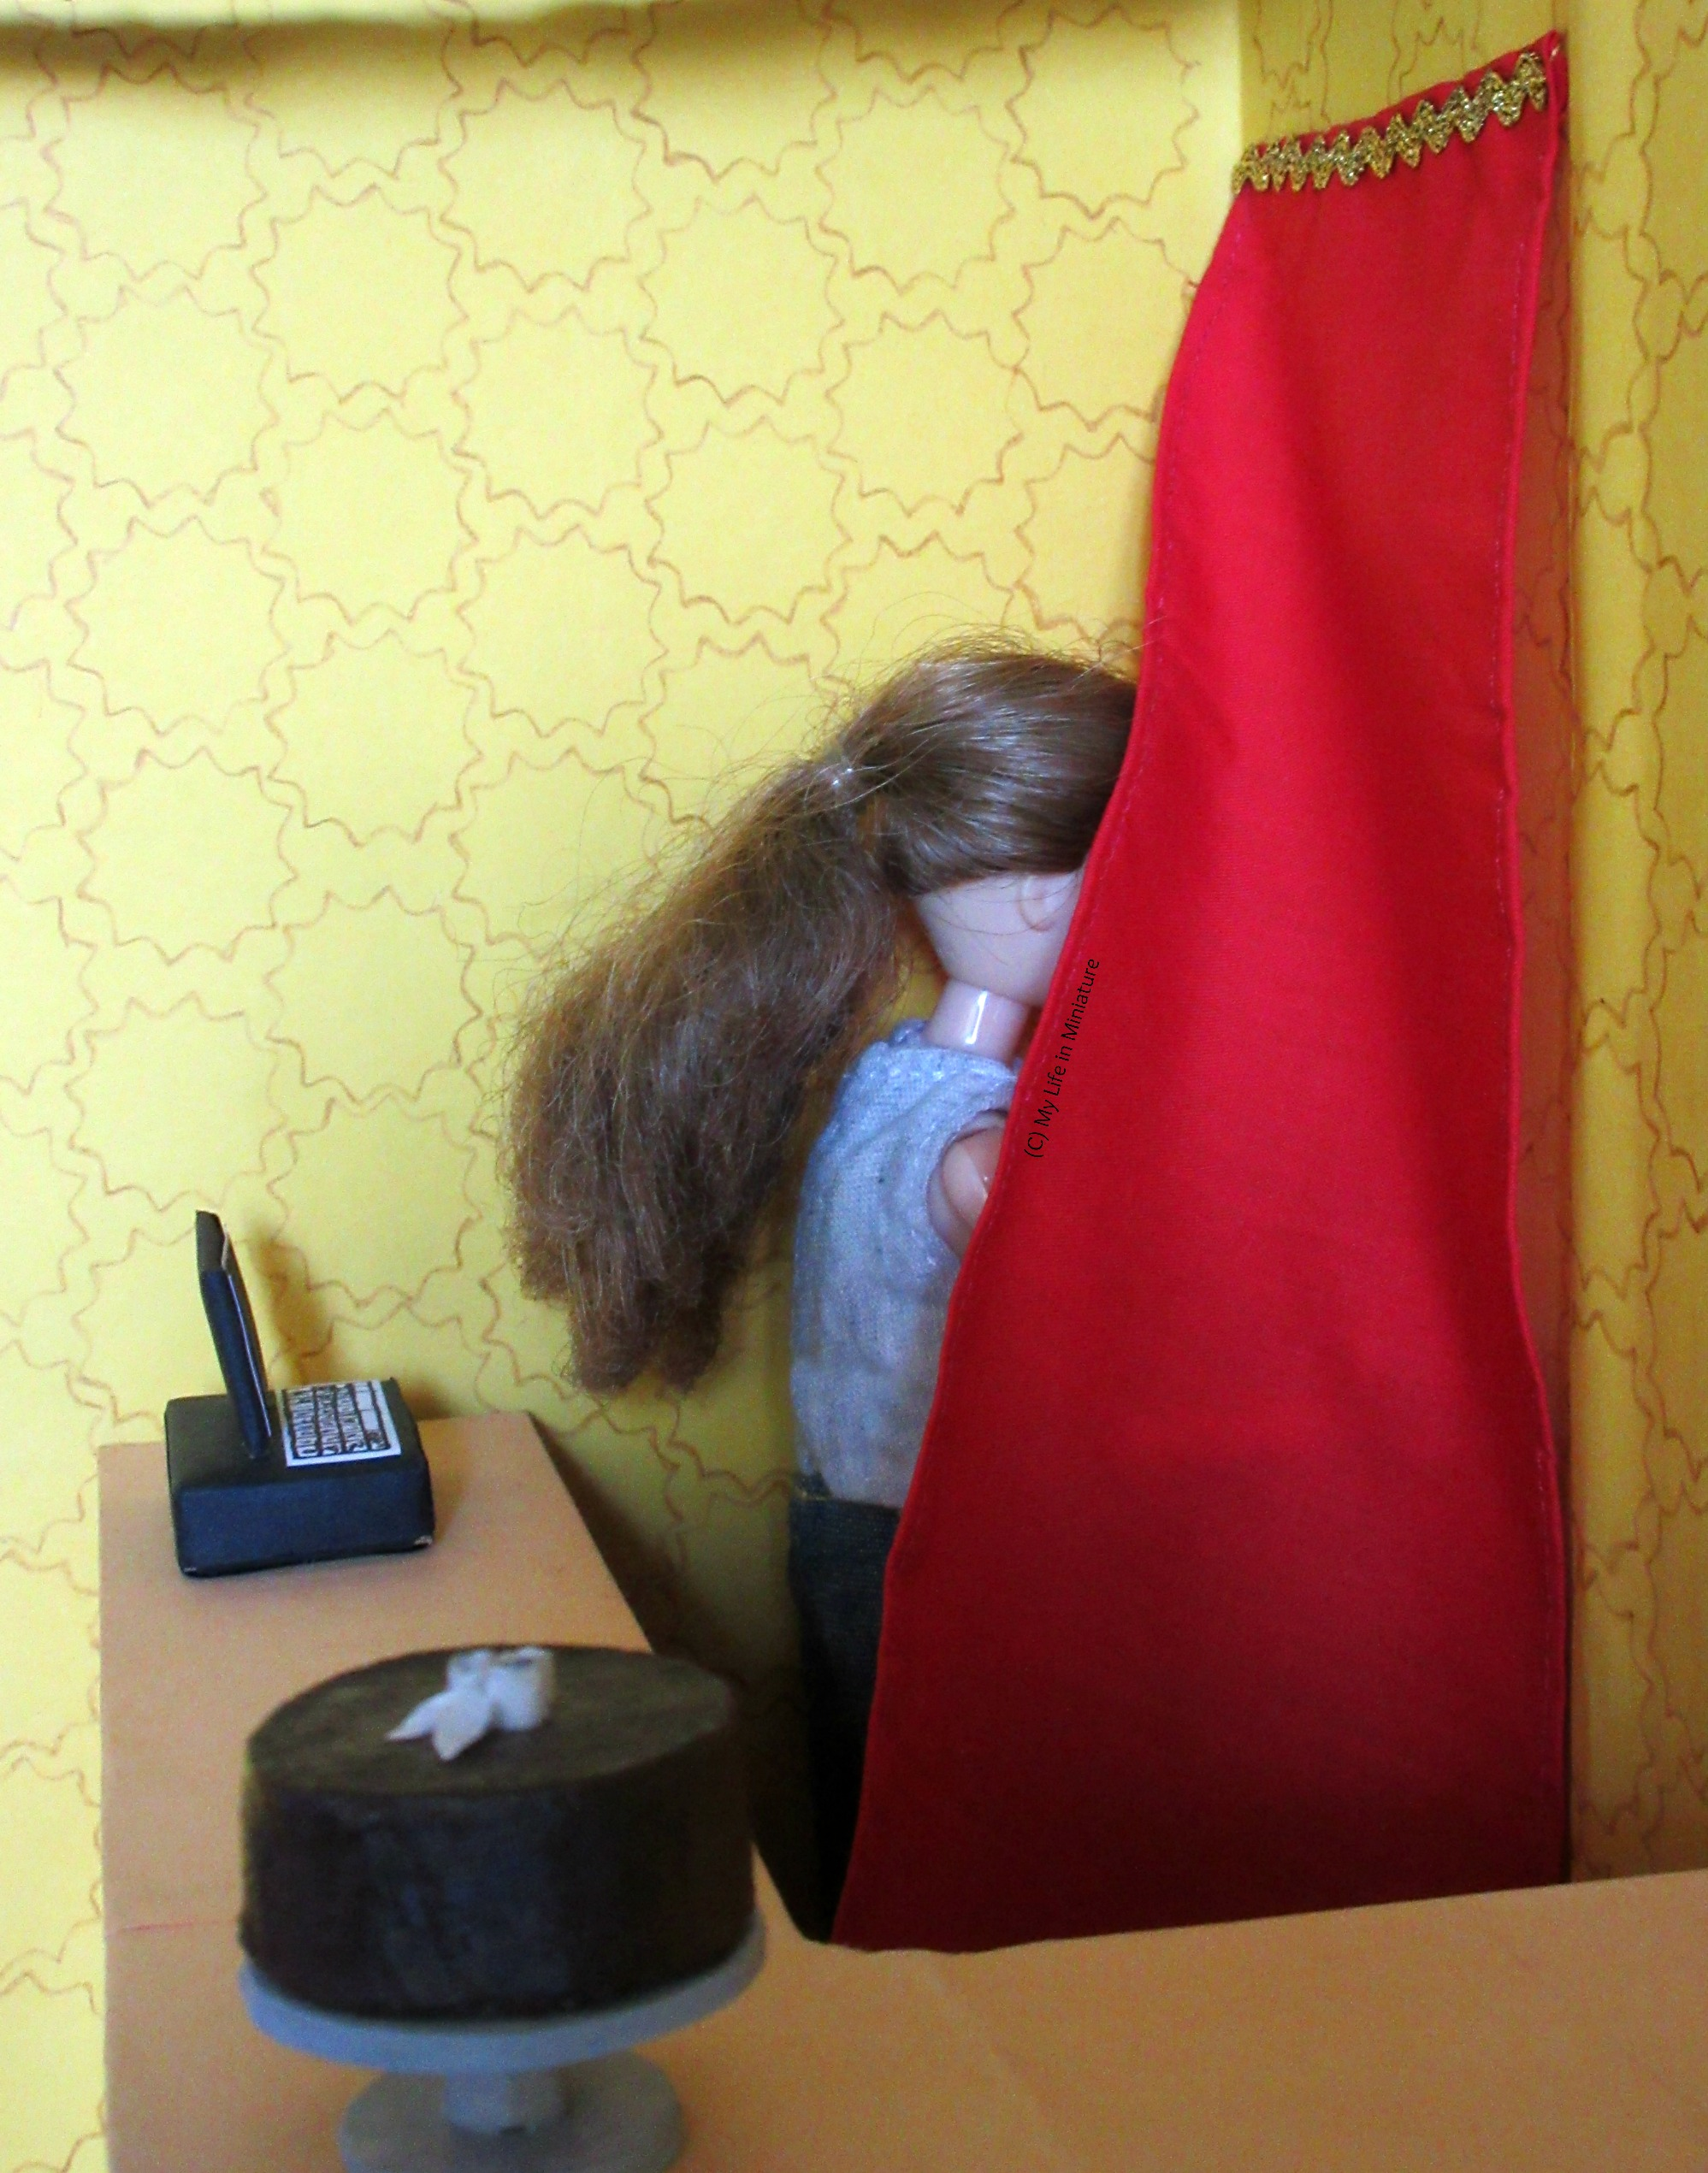 Sarah is holding the red curtain aside to go through it to the back rooms of Tea at Yaz's. The curved counter's top is visible in the foreground.